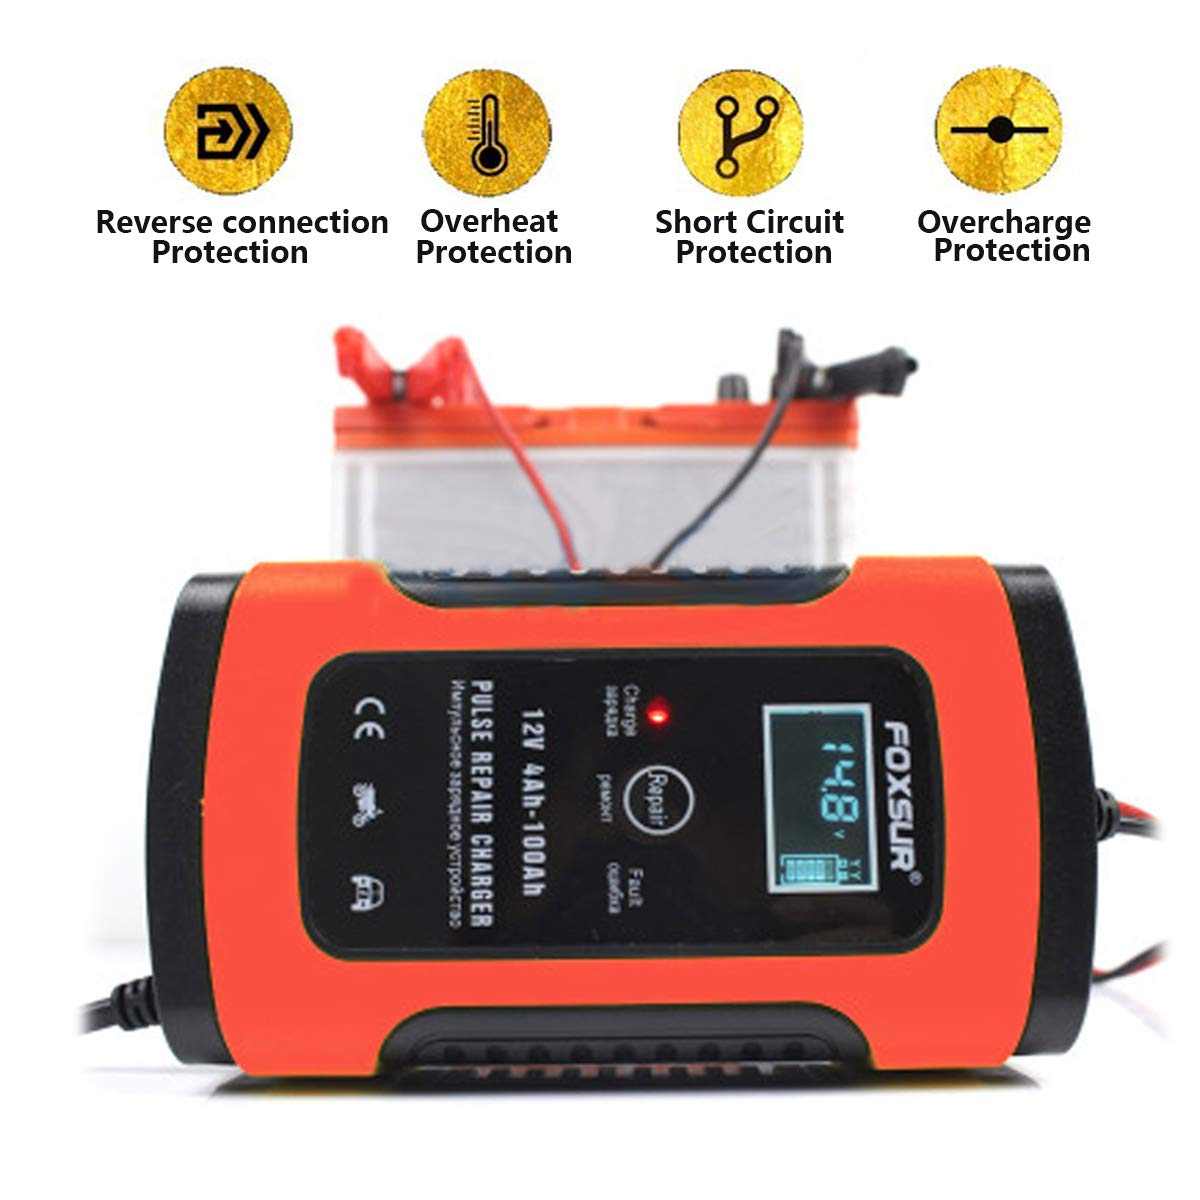 TSEIPOAOI Car Battery Charger Maintainer 5 Amp LCD 12V Car Cars Truck Motorcycle household toy cars agricultural vehicles,EU Plug